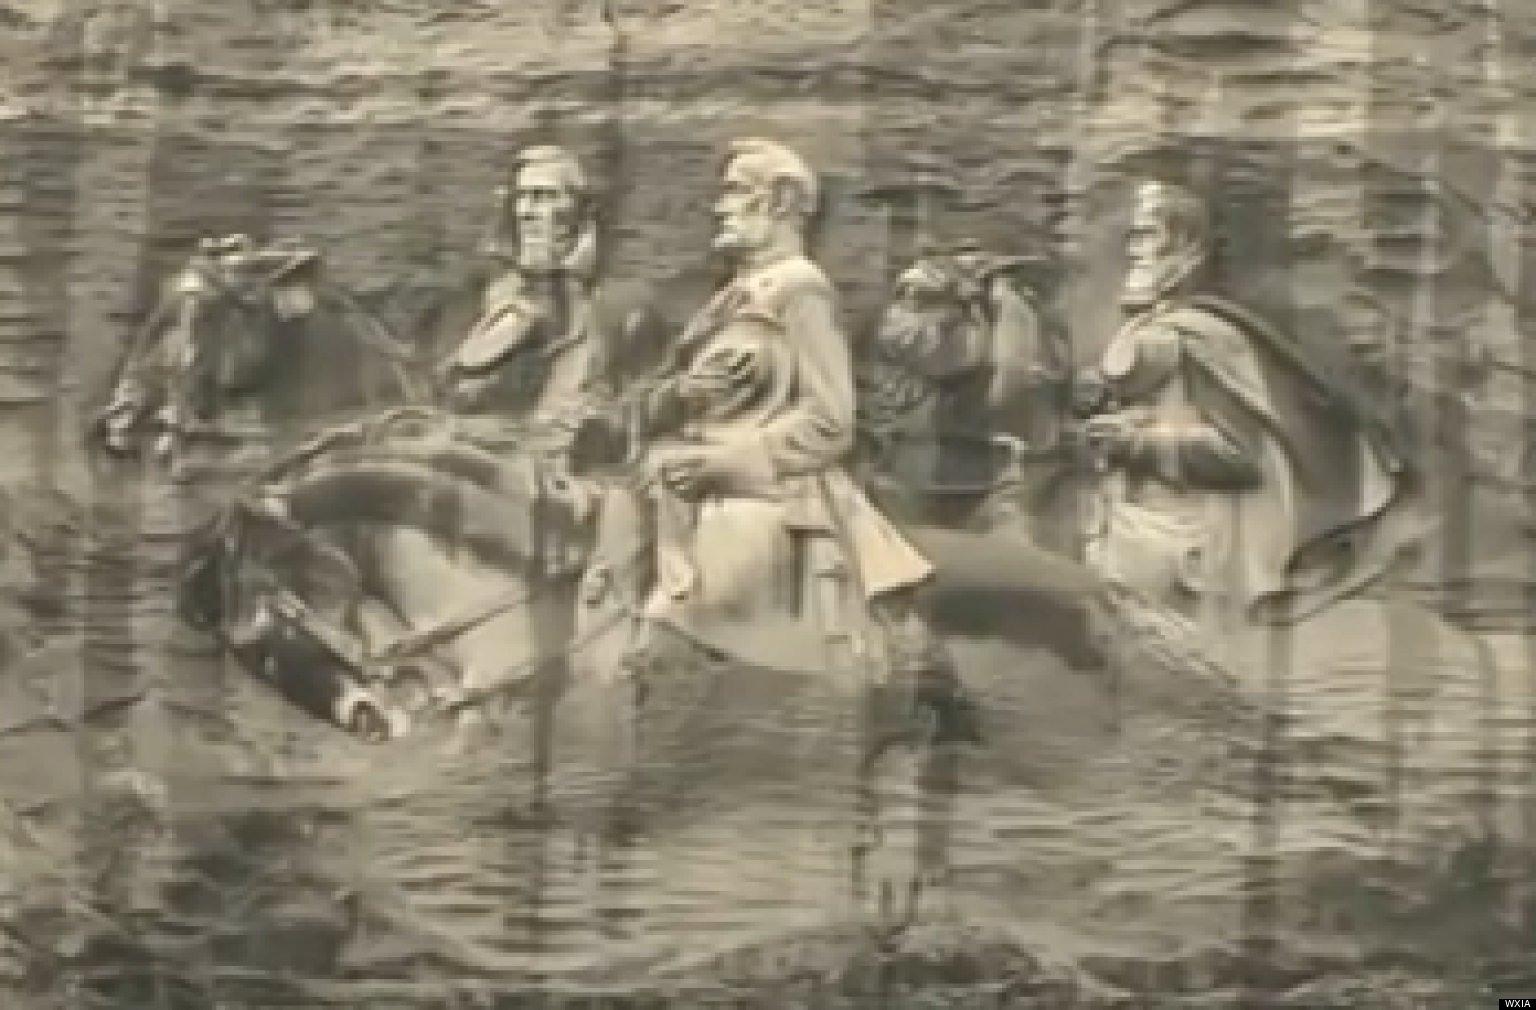 Unsurprisingly atlanta s stone mountain carving is center of